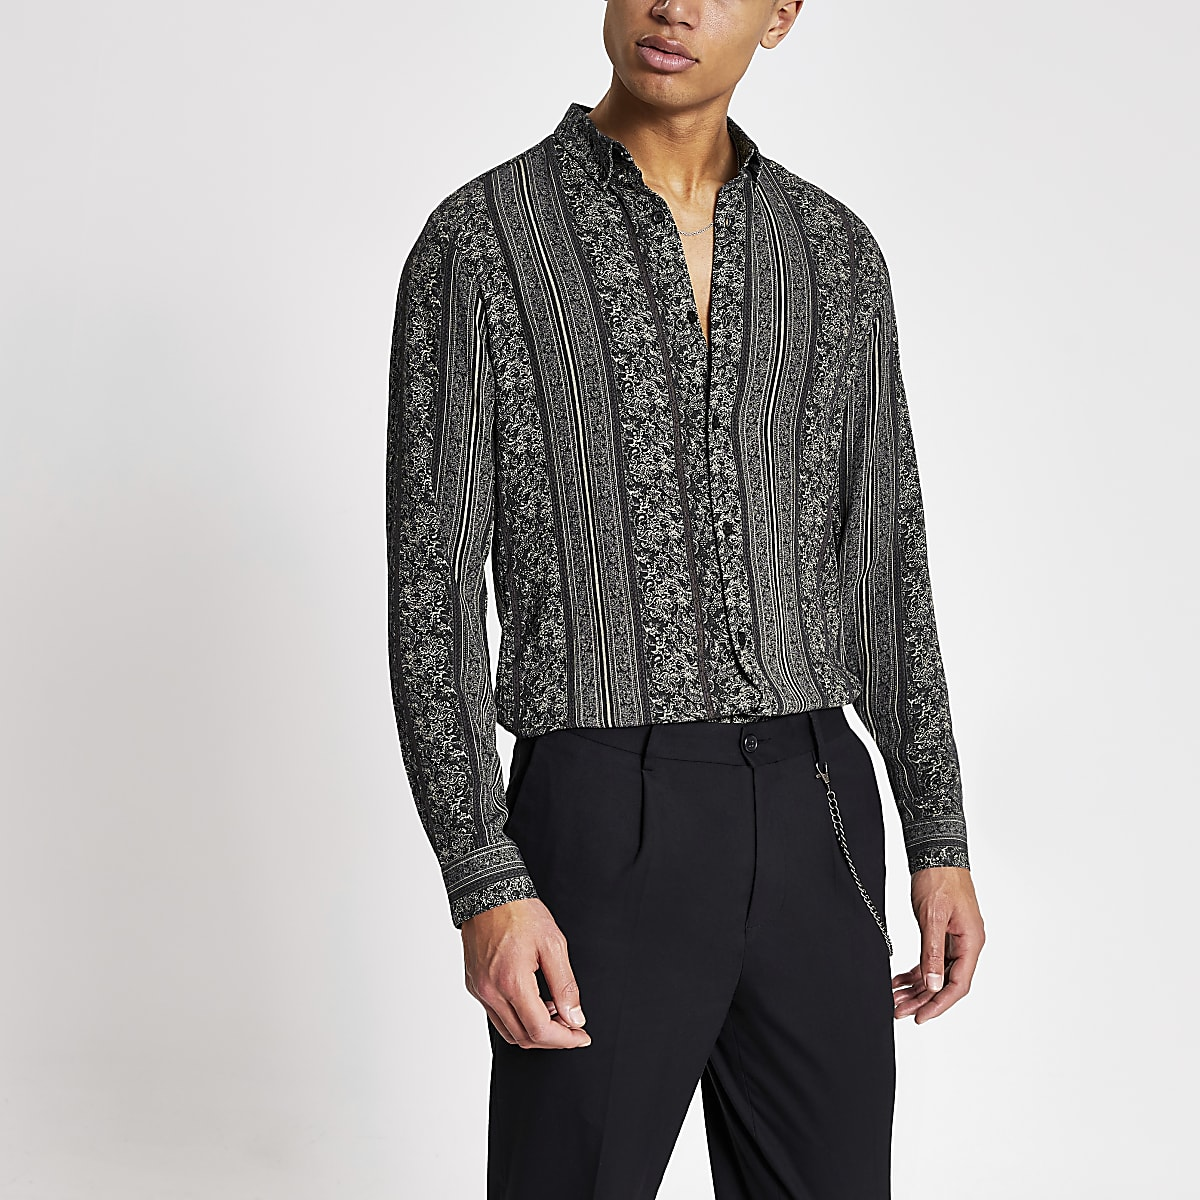 Black aztec printed slim fit shirt